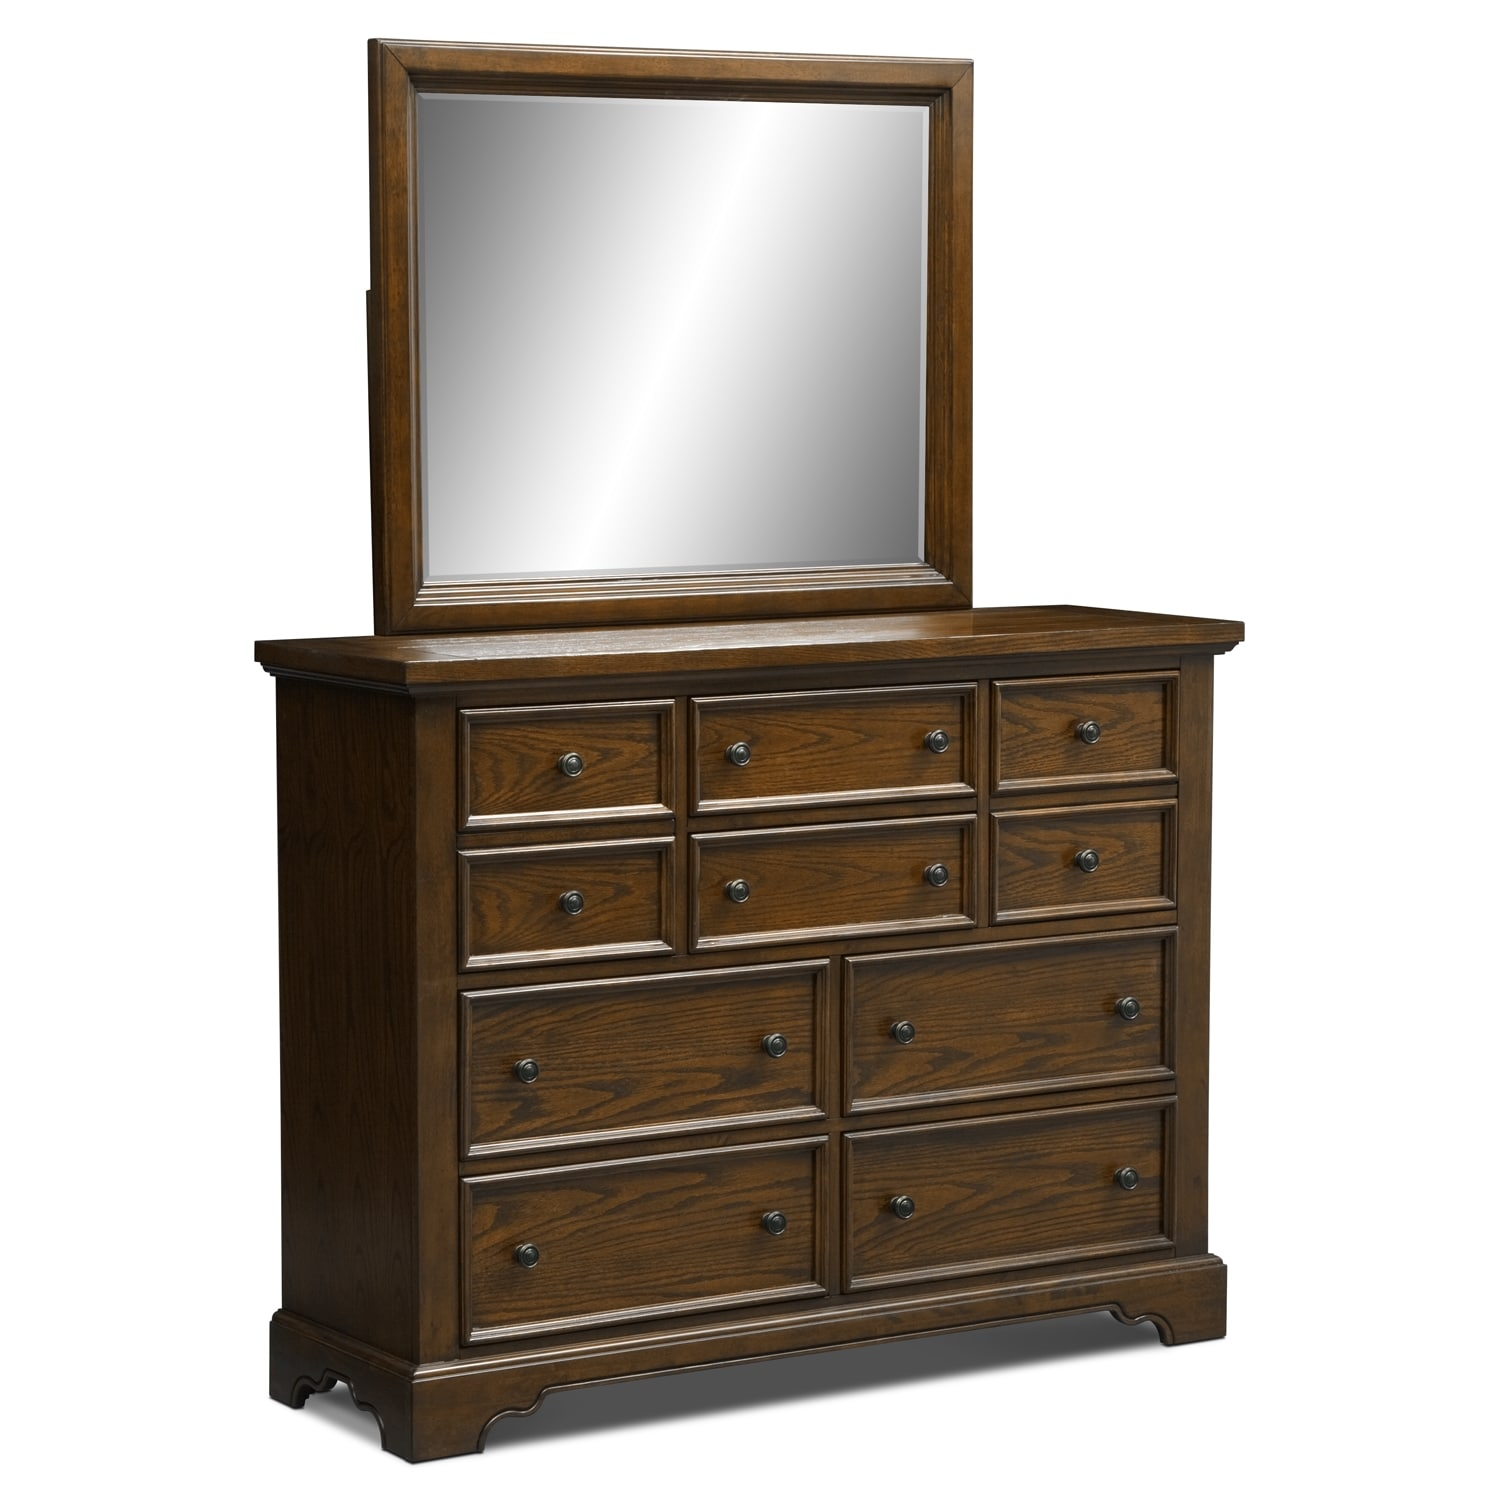 Dressers Chests Value City Furniture Value City Furniture